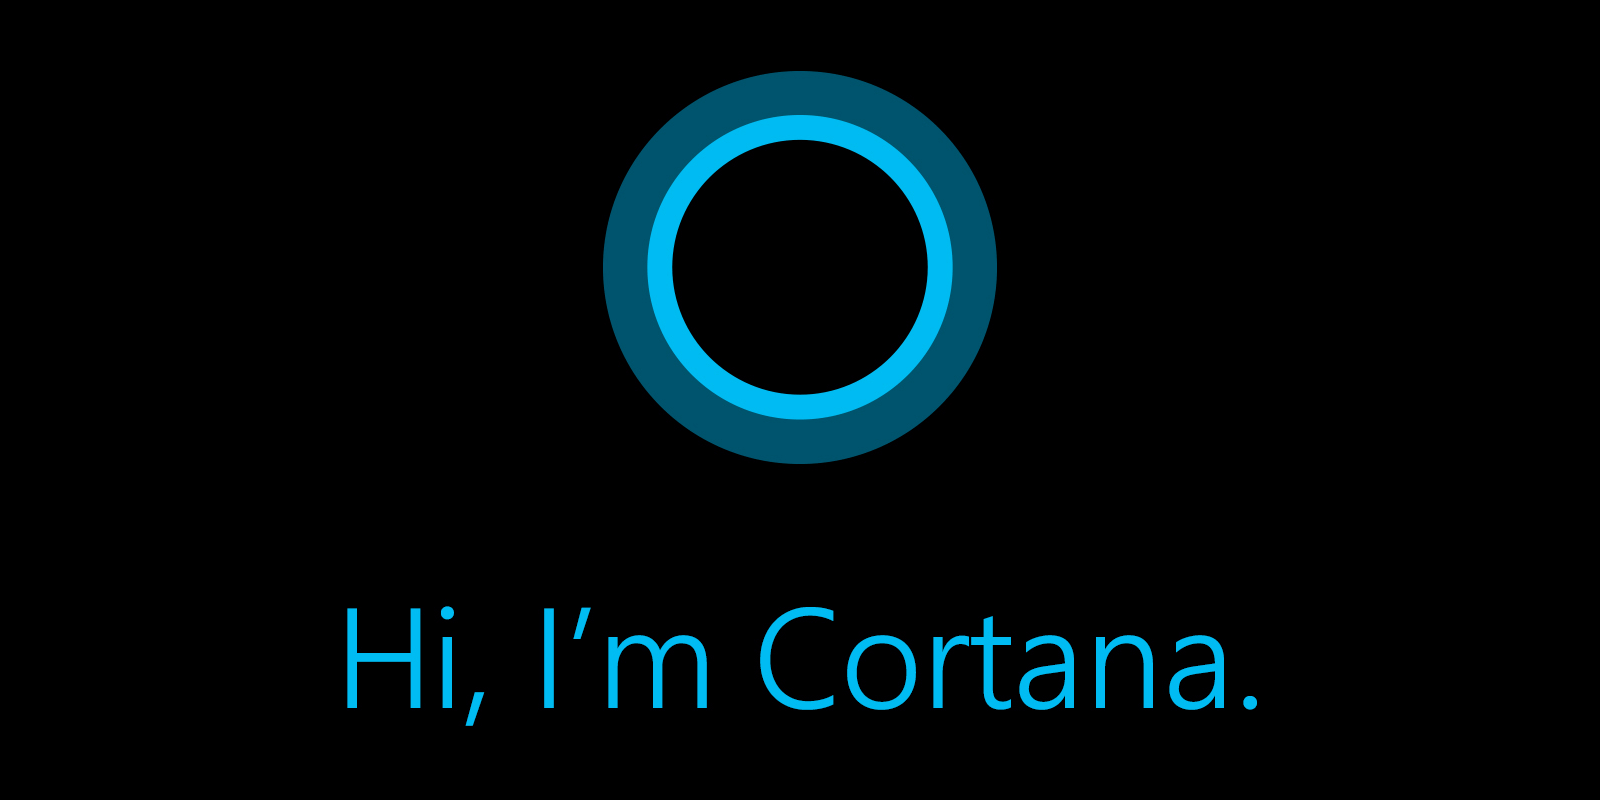 Microsoft Is Killing Off Cortana For A Number Of Devices, iOS And Android